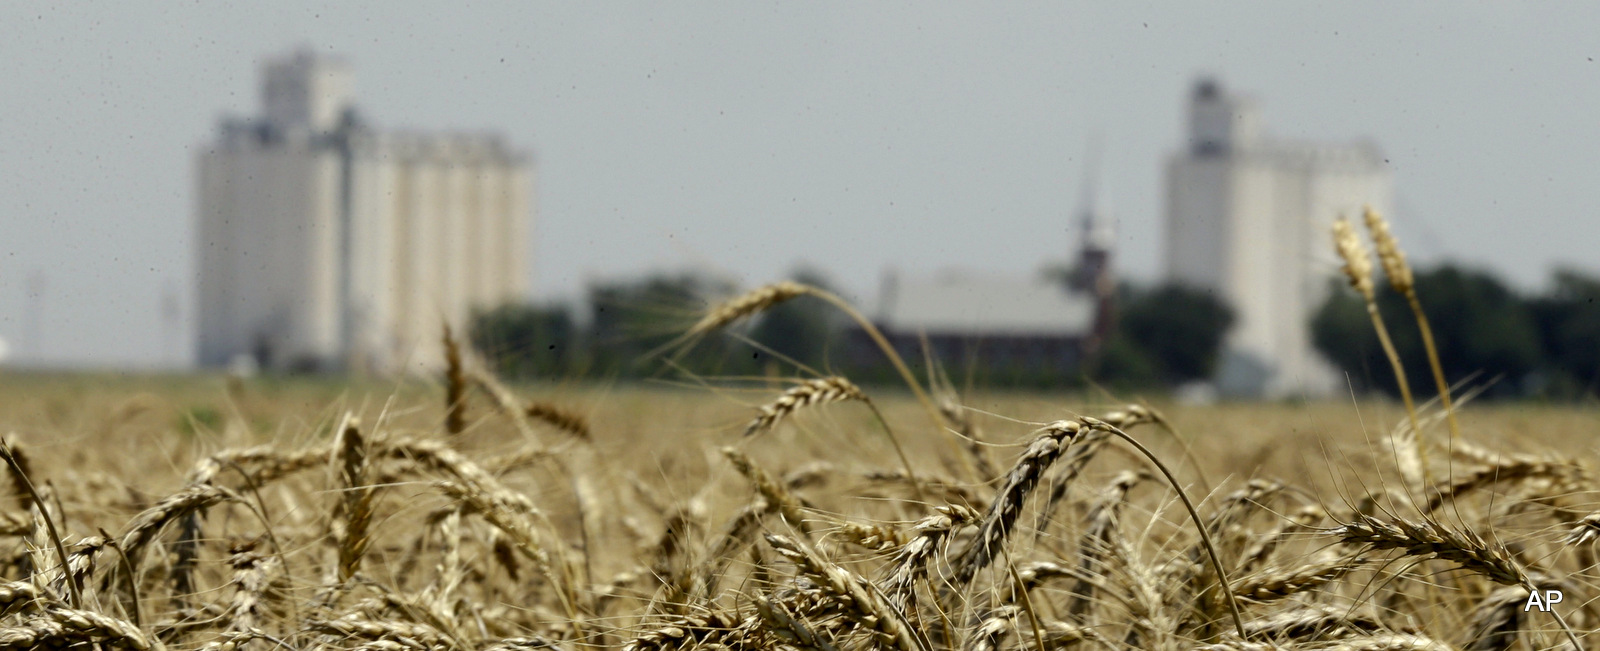 Wheat stands ready for harvest in a field near Anthony, Kan. Wheat stands ready for harvest in a field near Anthony, Kan.